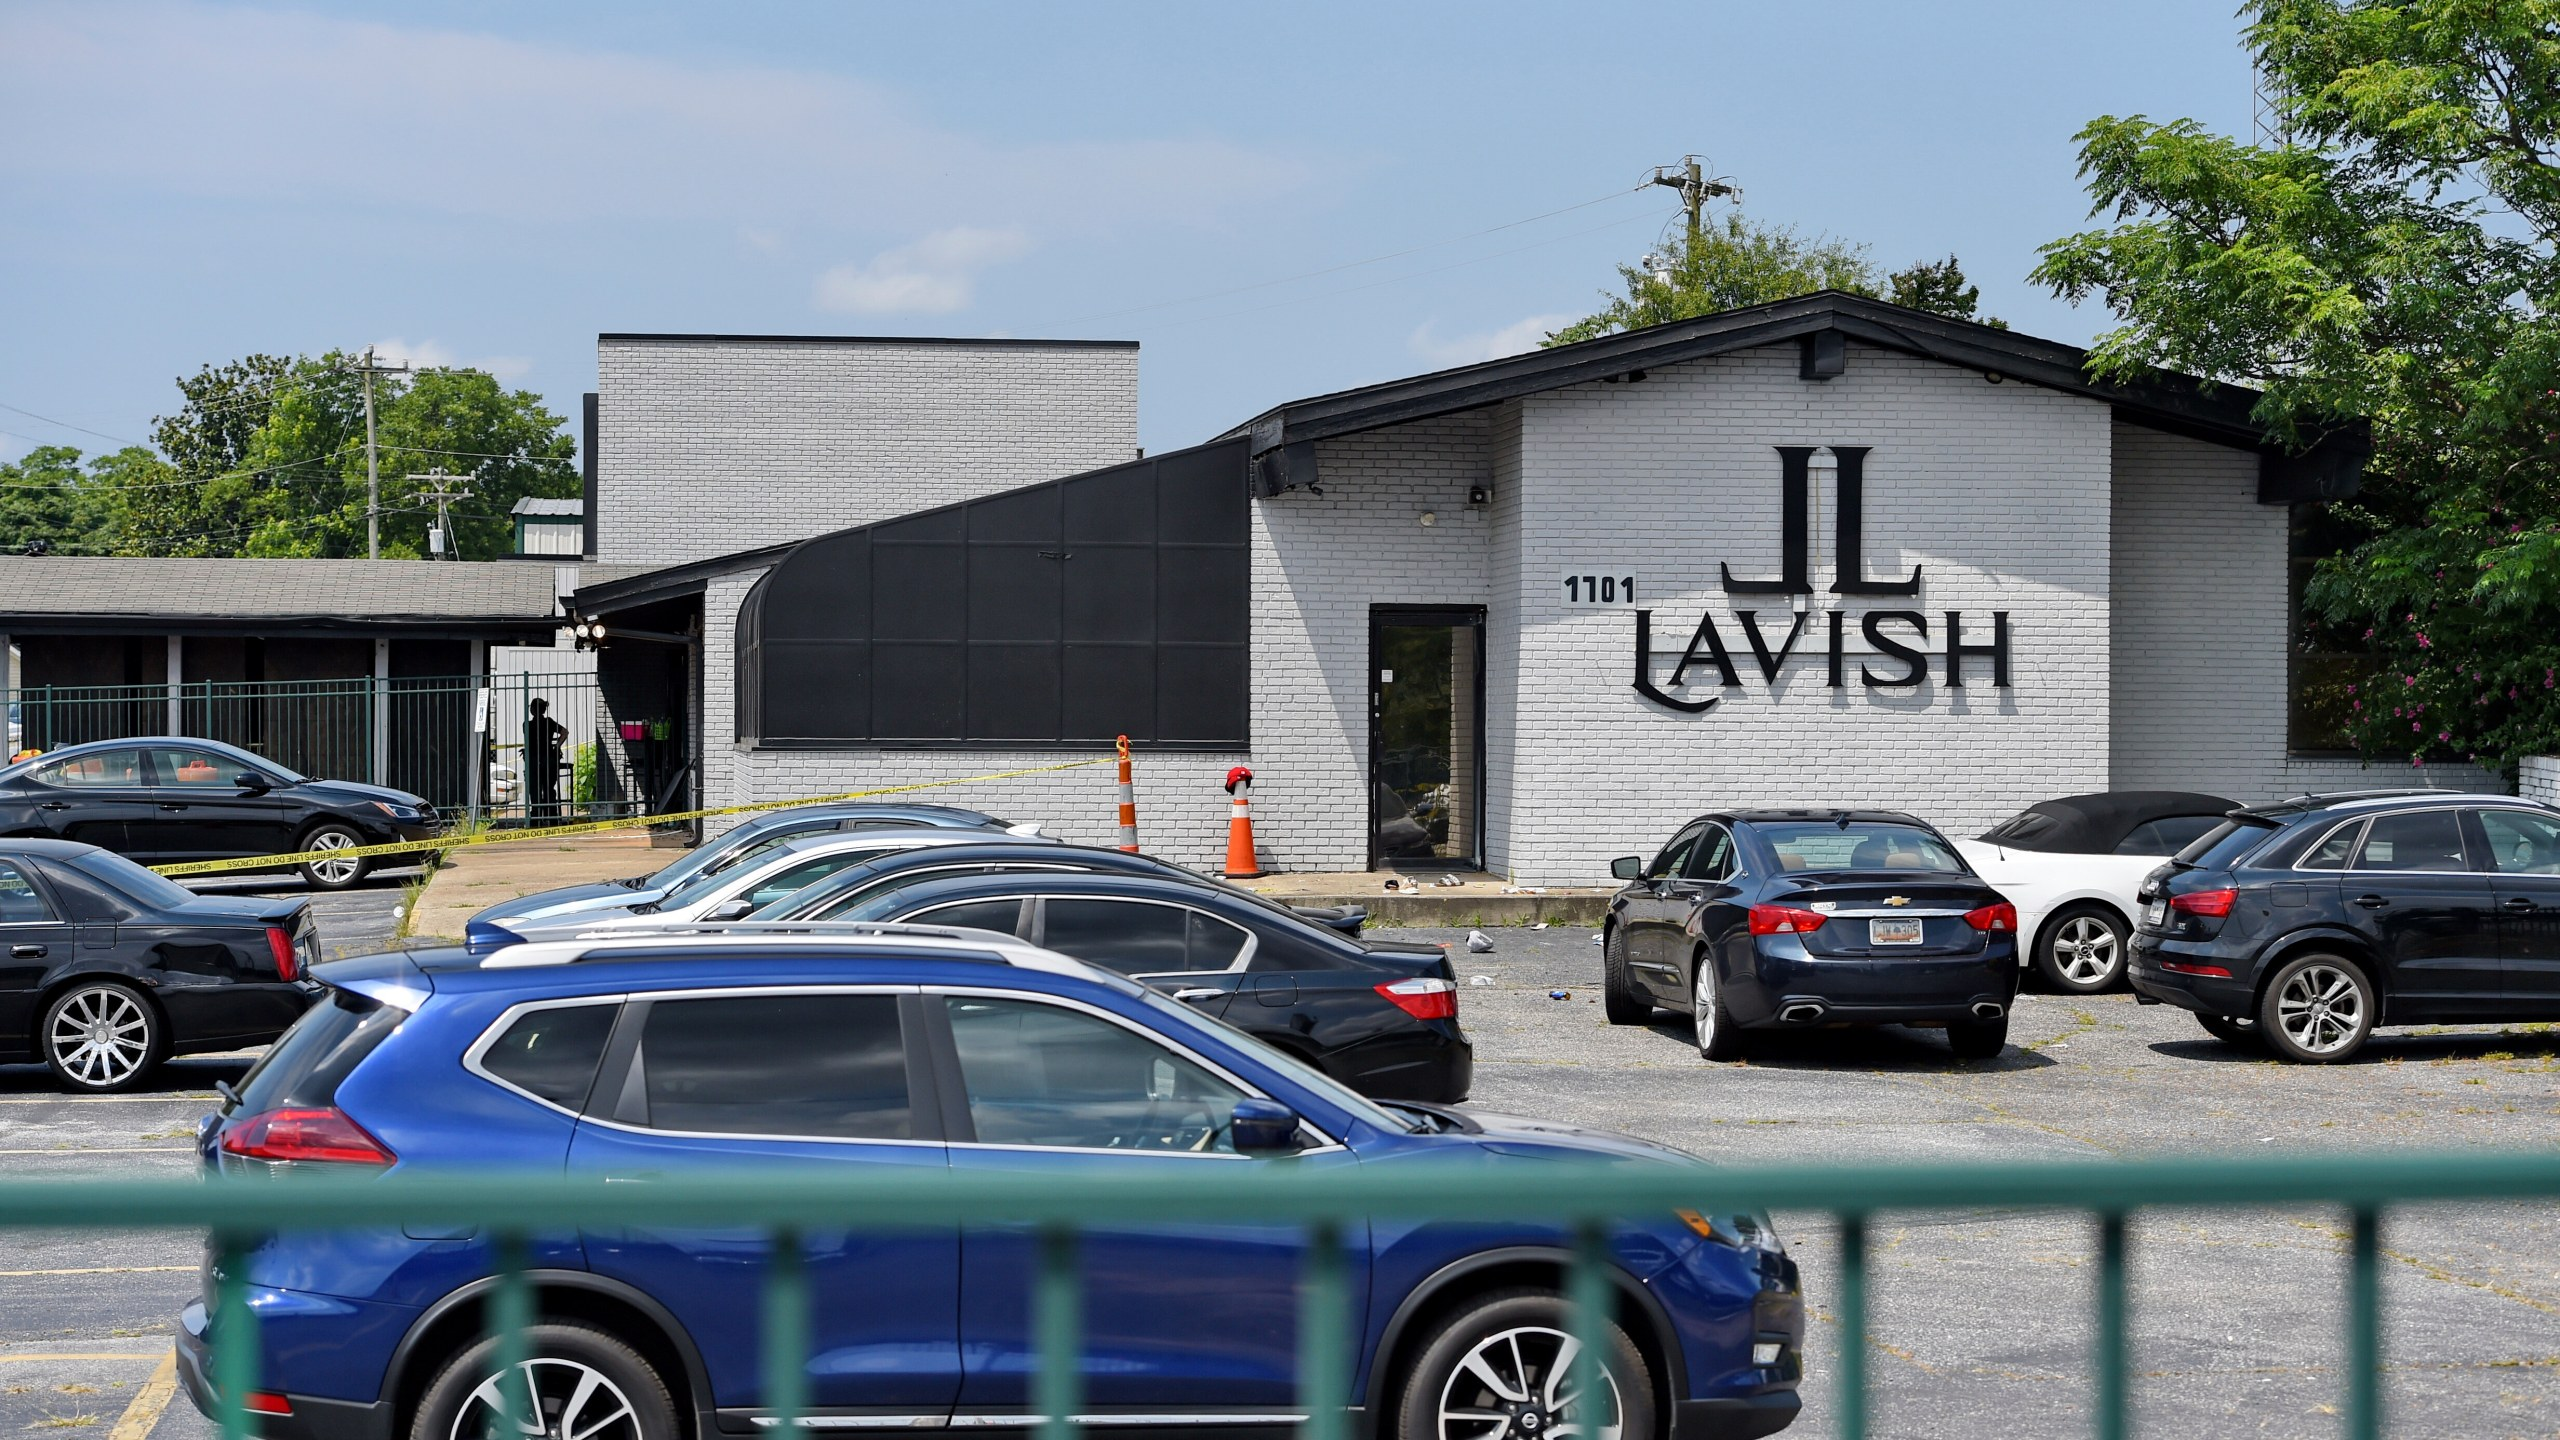 The Lavish Night Club where a shooting early Sunday, July 5, 2020, left numerous dead and at least 8 injured in Greenville, S.C. (AP Photo/Richard Shiro)